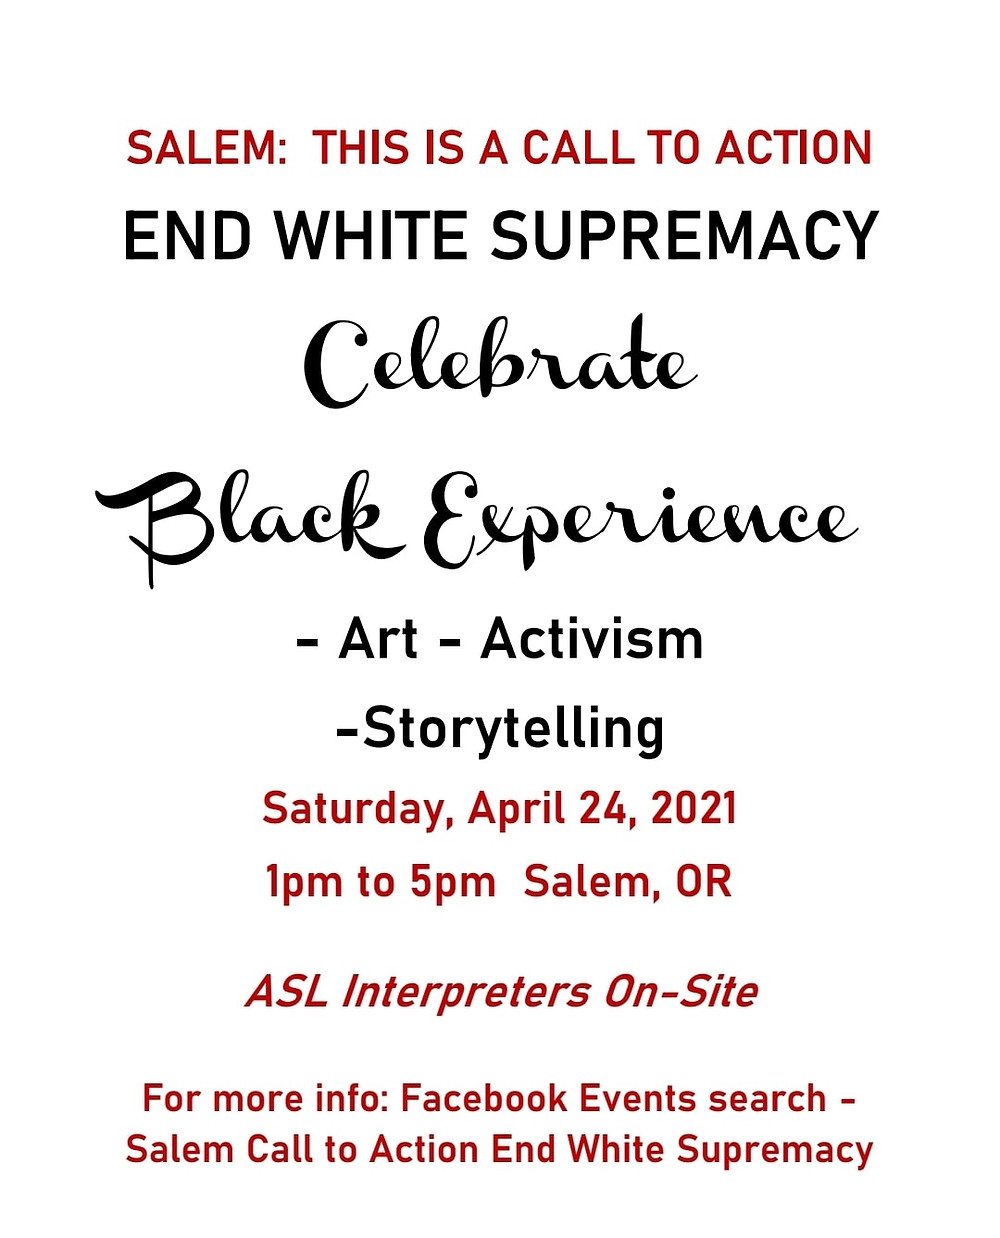 Flyer for the first Salem event Amira organized